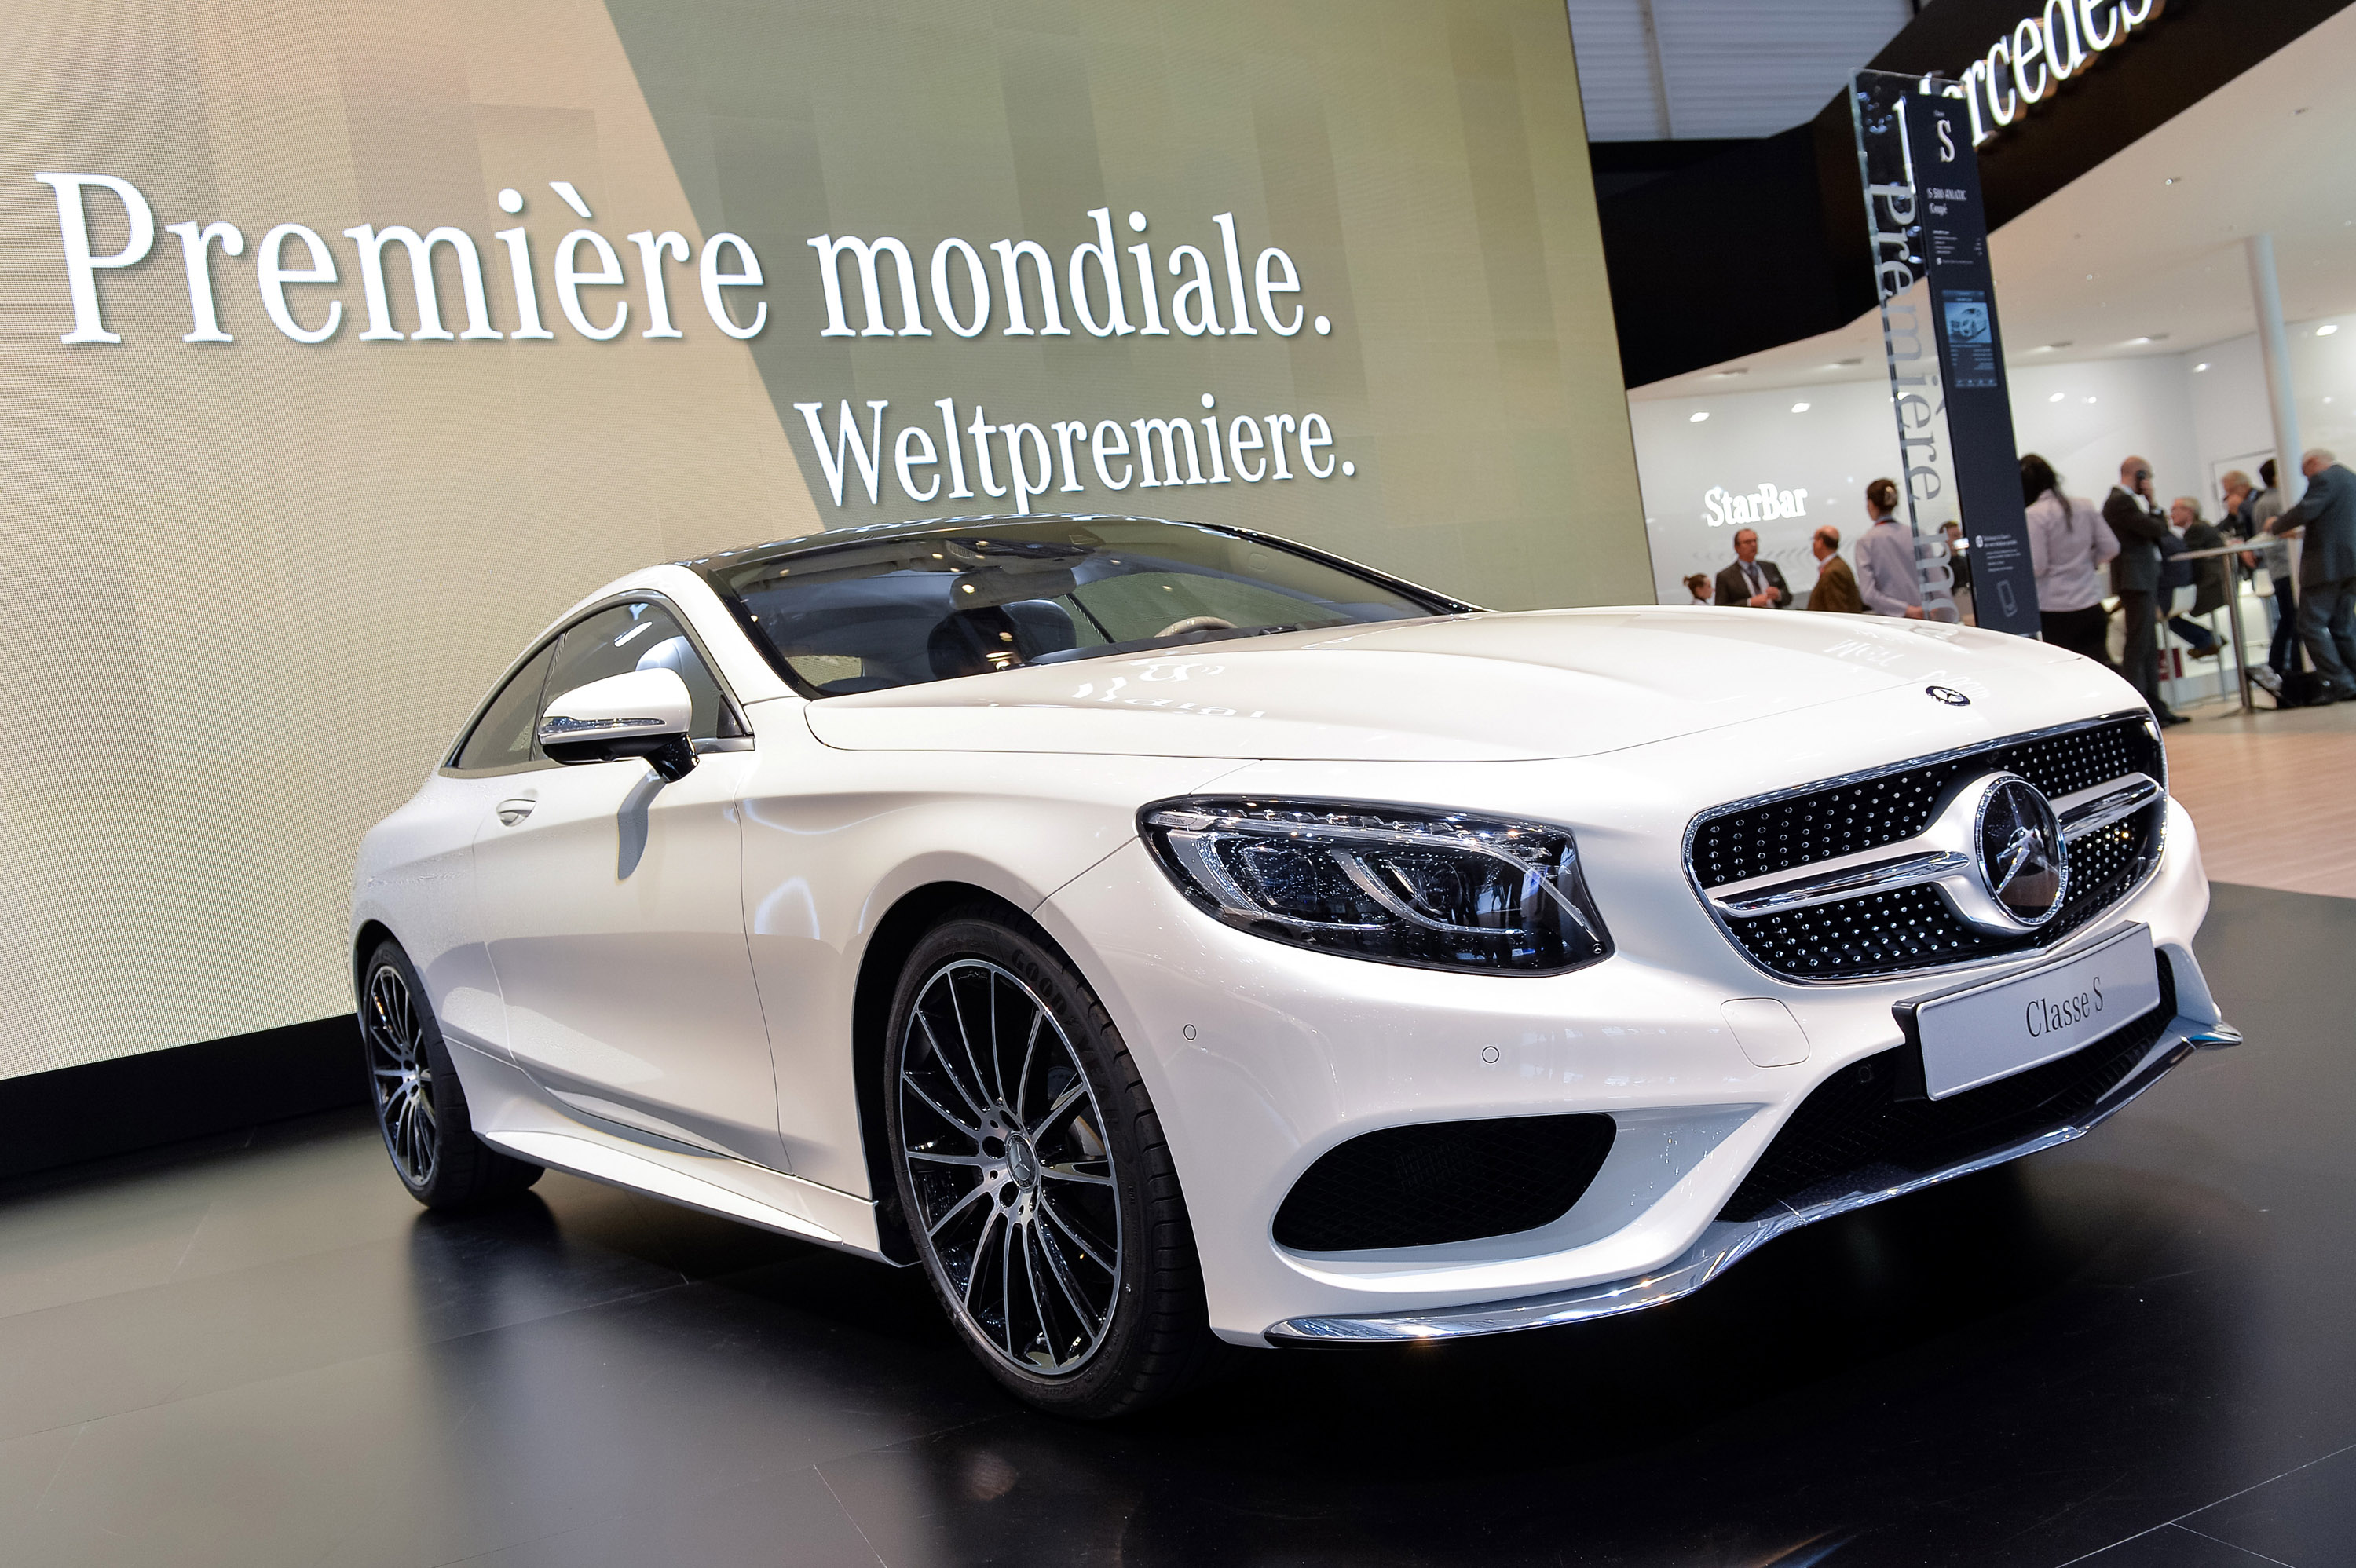 Mercedes benz s class coupe geneva 2014 picture 99391 for Mercedes benz s class coupe 2014